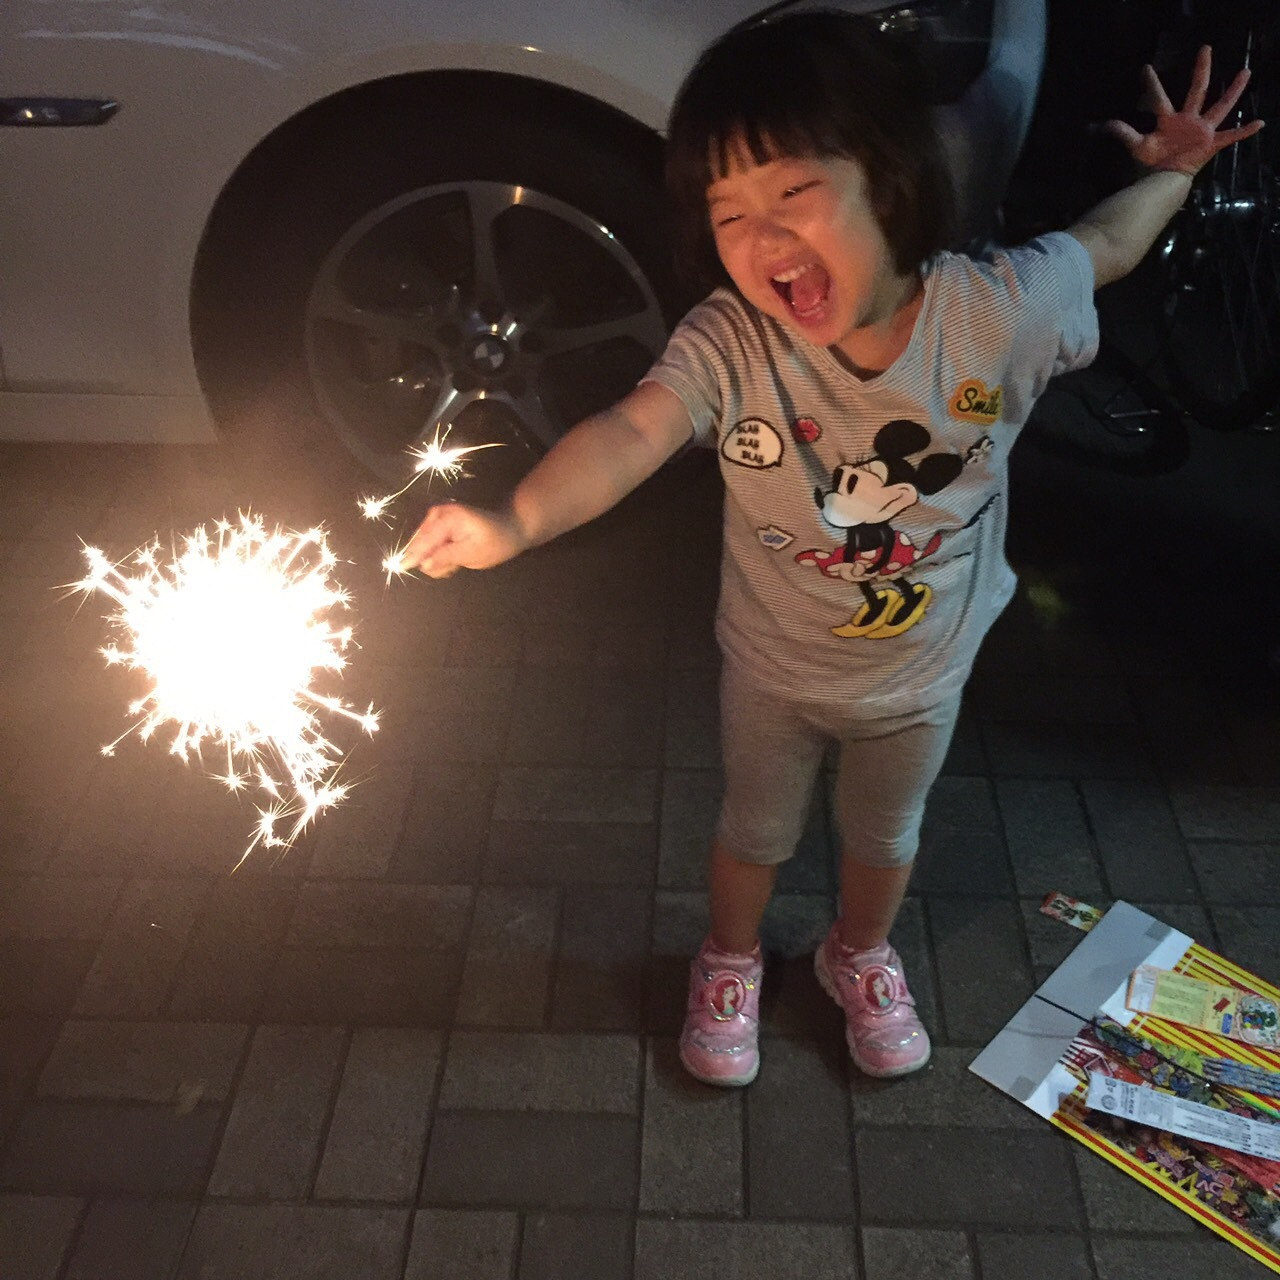 3-year-old grandchild and first fireworks image